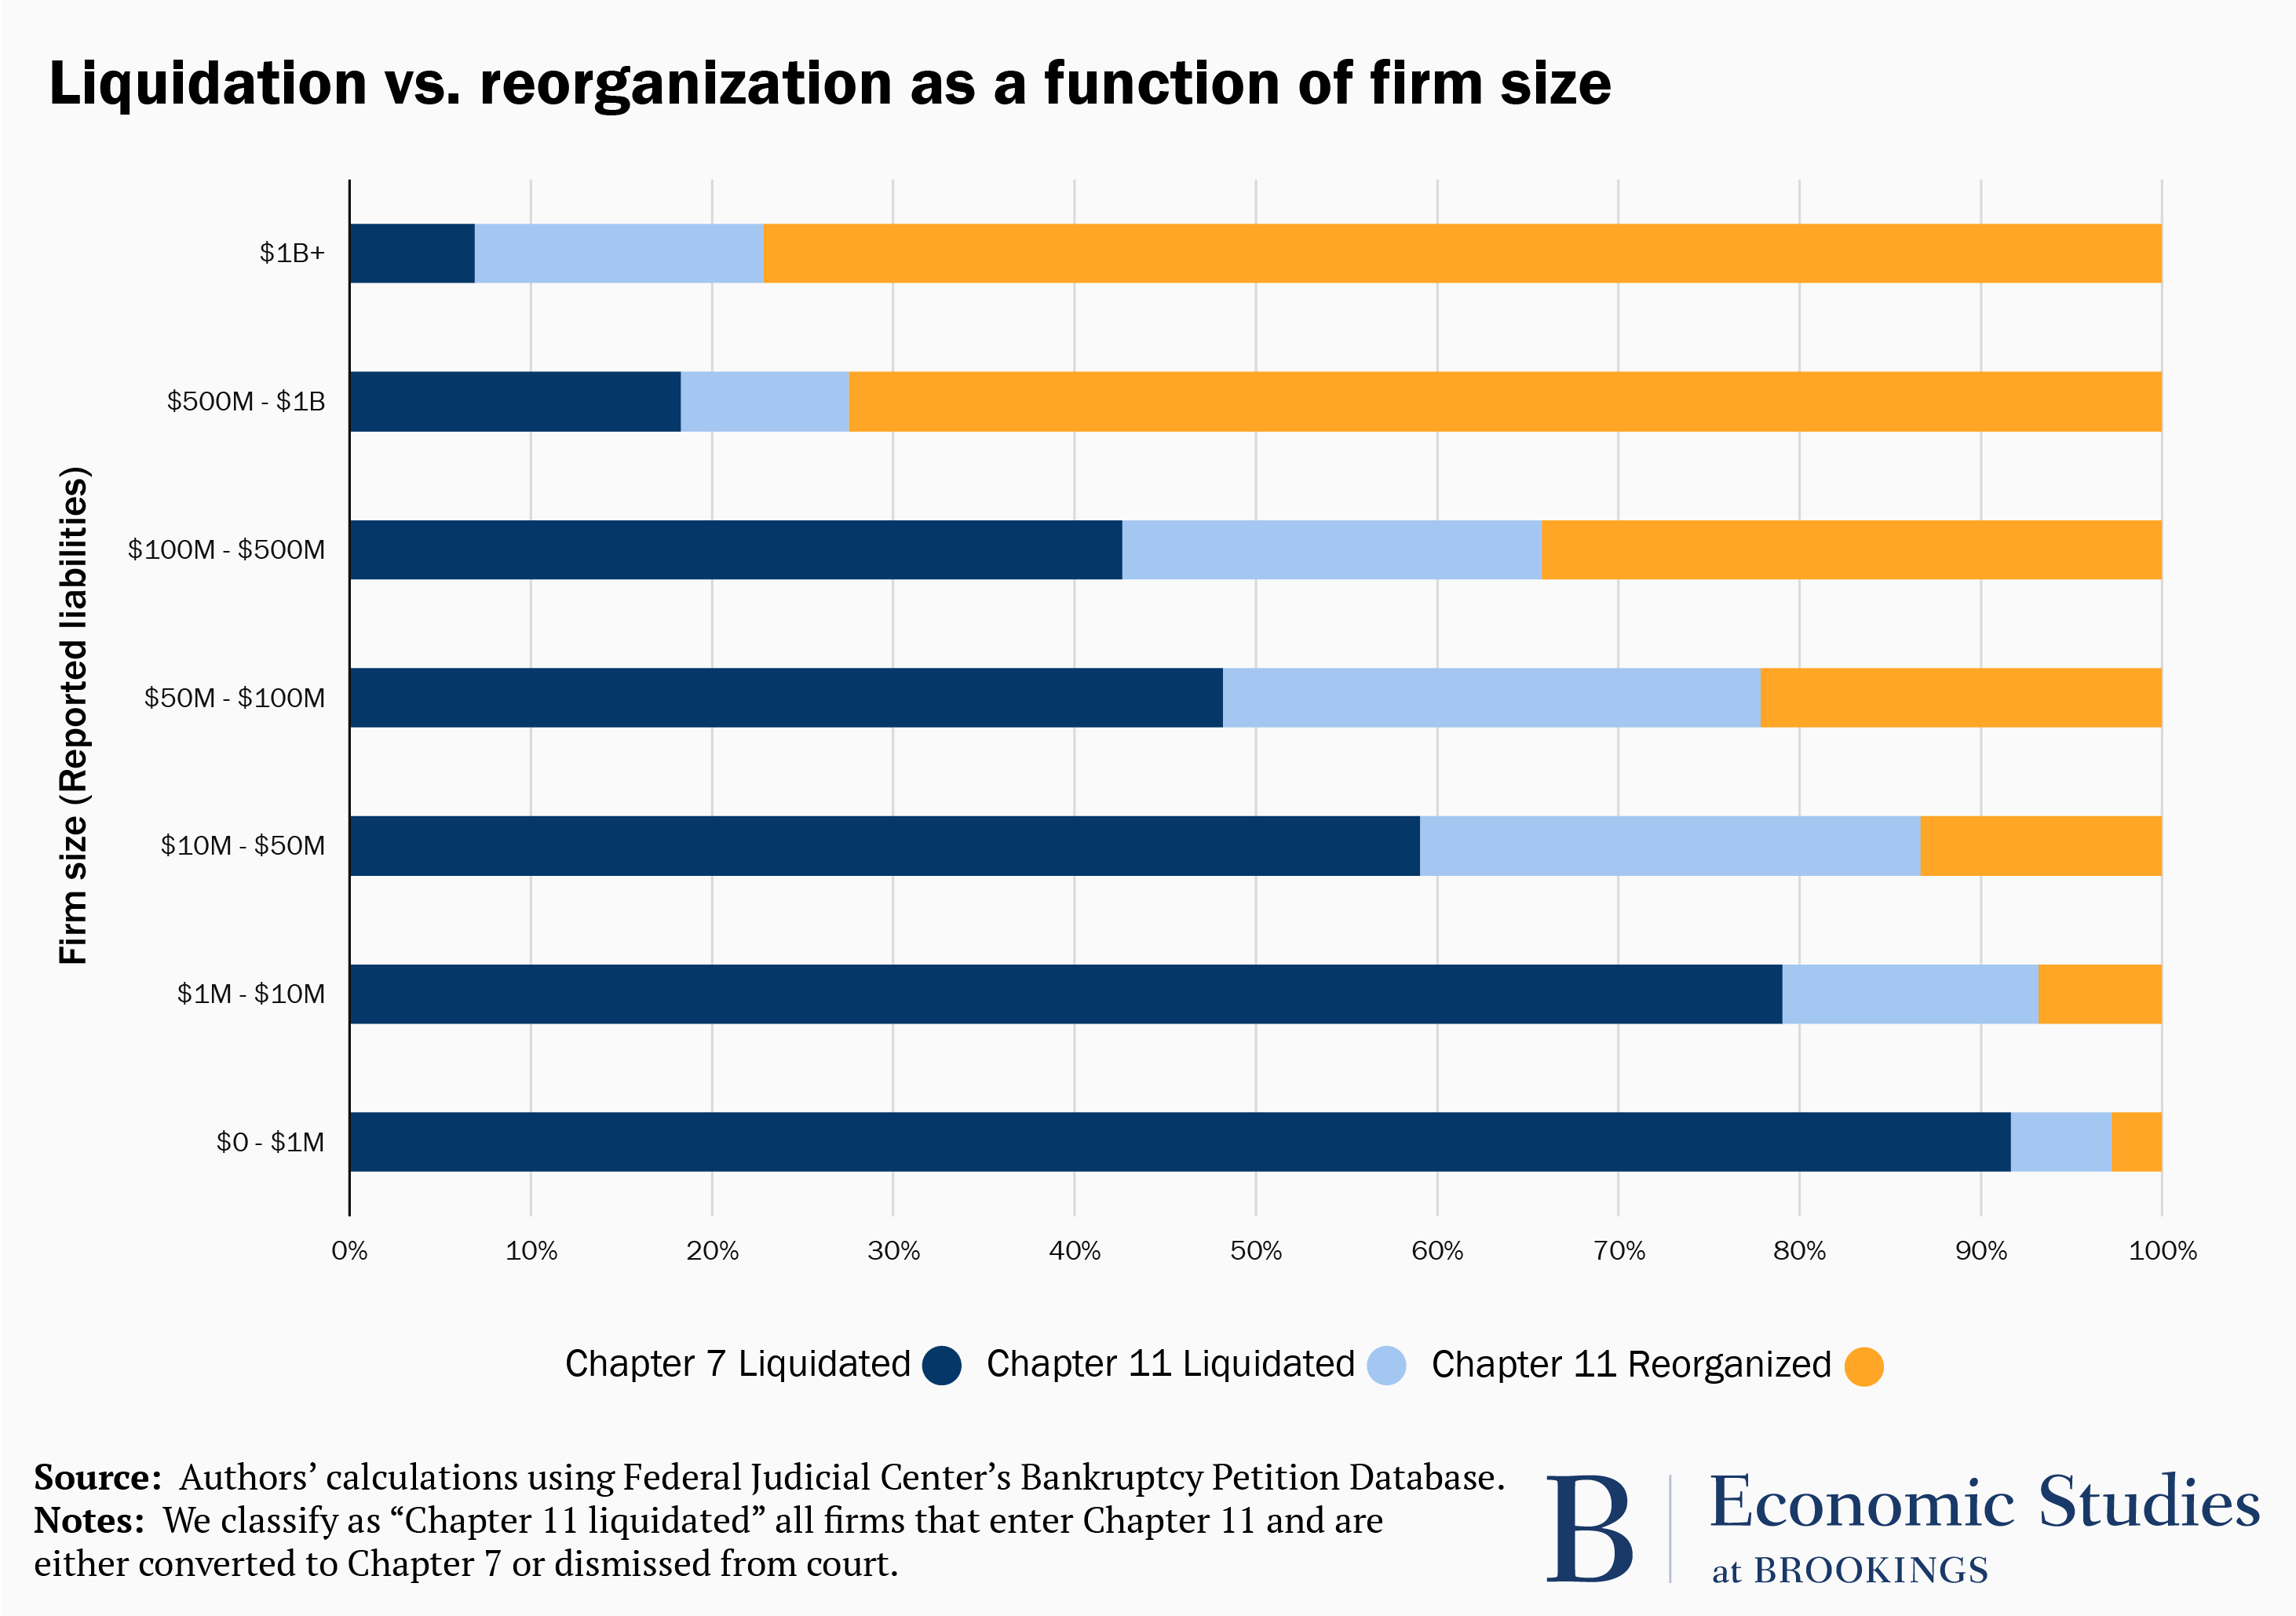 Graph showing liquidation vs. reorganization as a function of firm size